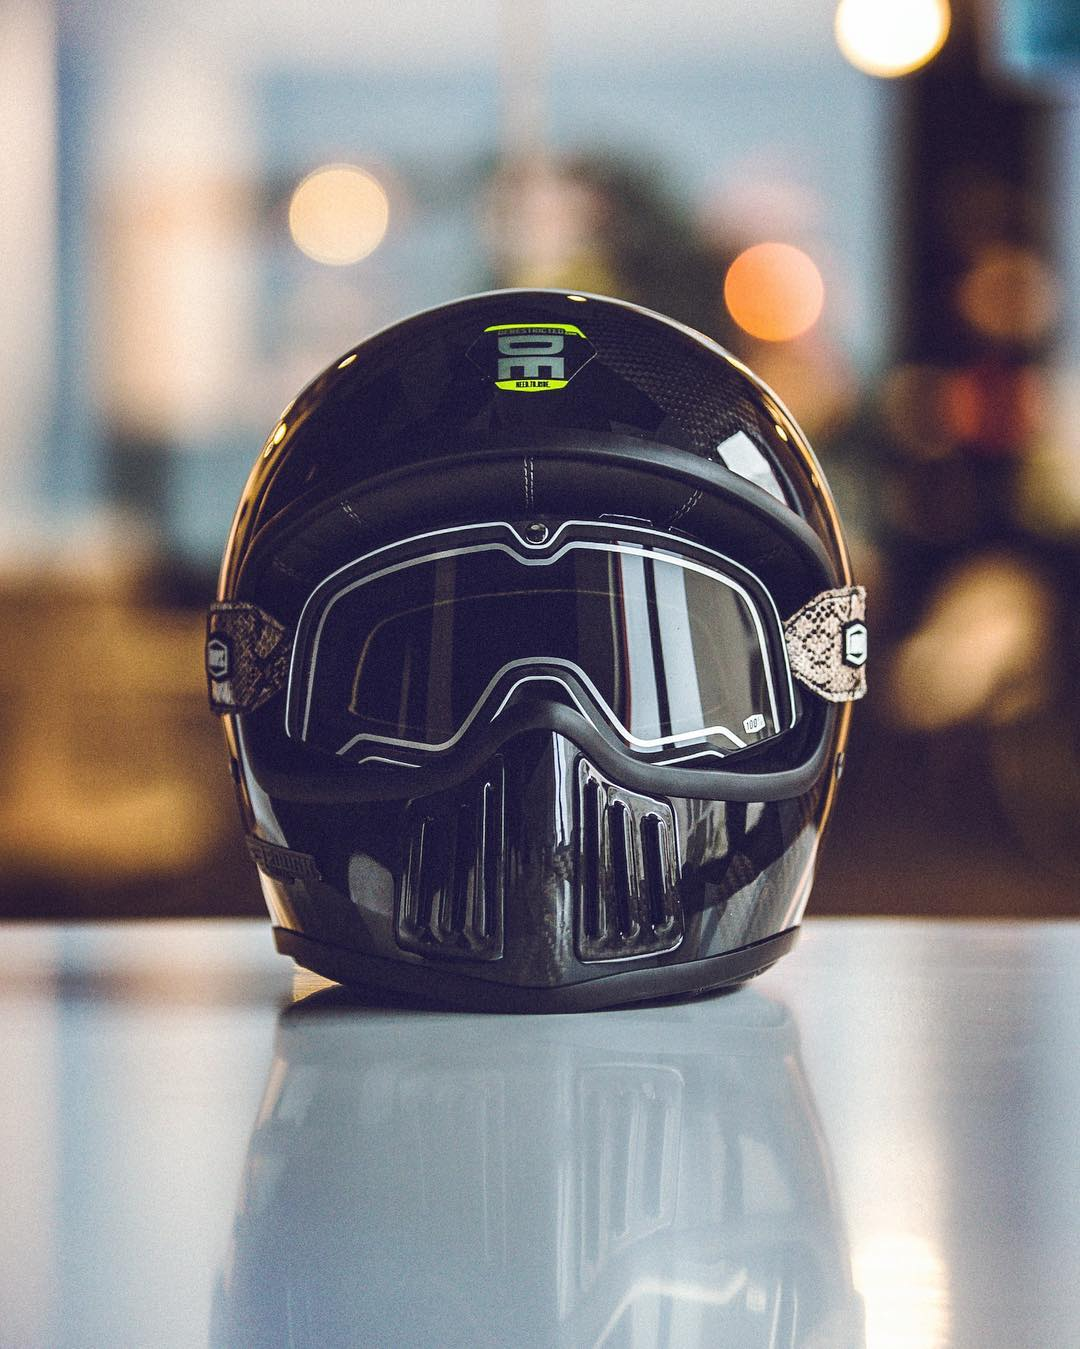 Coming soon from the designer of the superb #bavarianfistfighter @winston_yeh is this new Premium leather and Carbon Fiber helmet. Winston kindly asked us to come up with a DERESTRICTED design for a limited edition model, on top of this base. Can't wait to show that too! #rninet #ride100percent #thebarstow